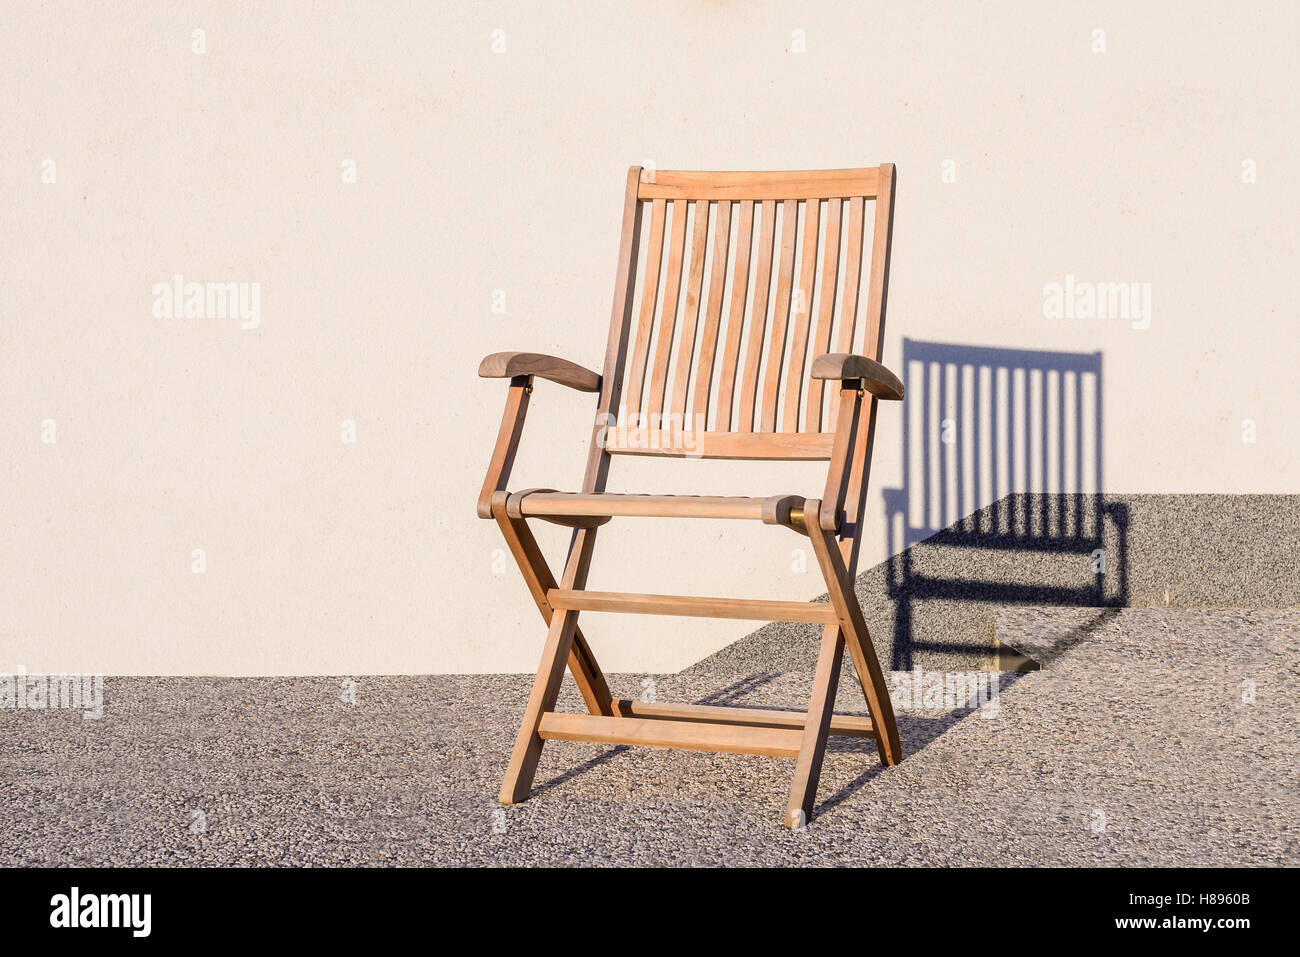 Foldable Deck Chair On Outdoor Terrace, Made Of Teak Tropical Hardwood